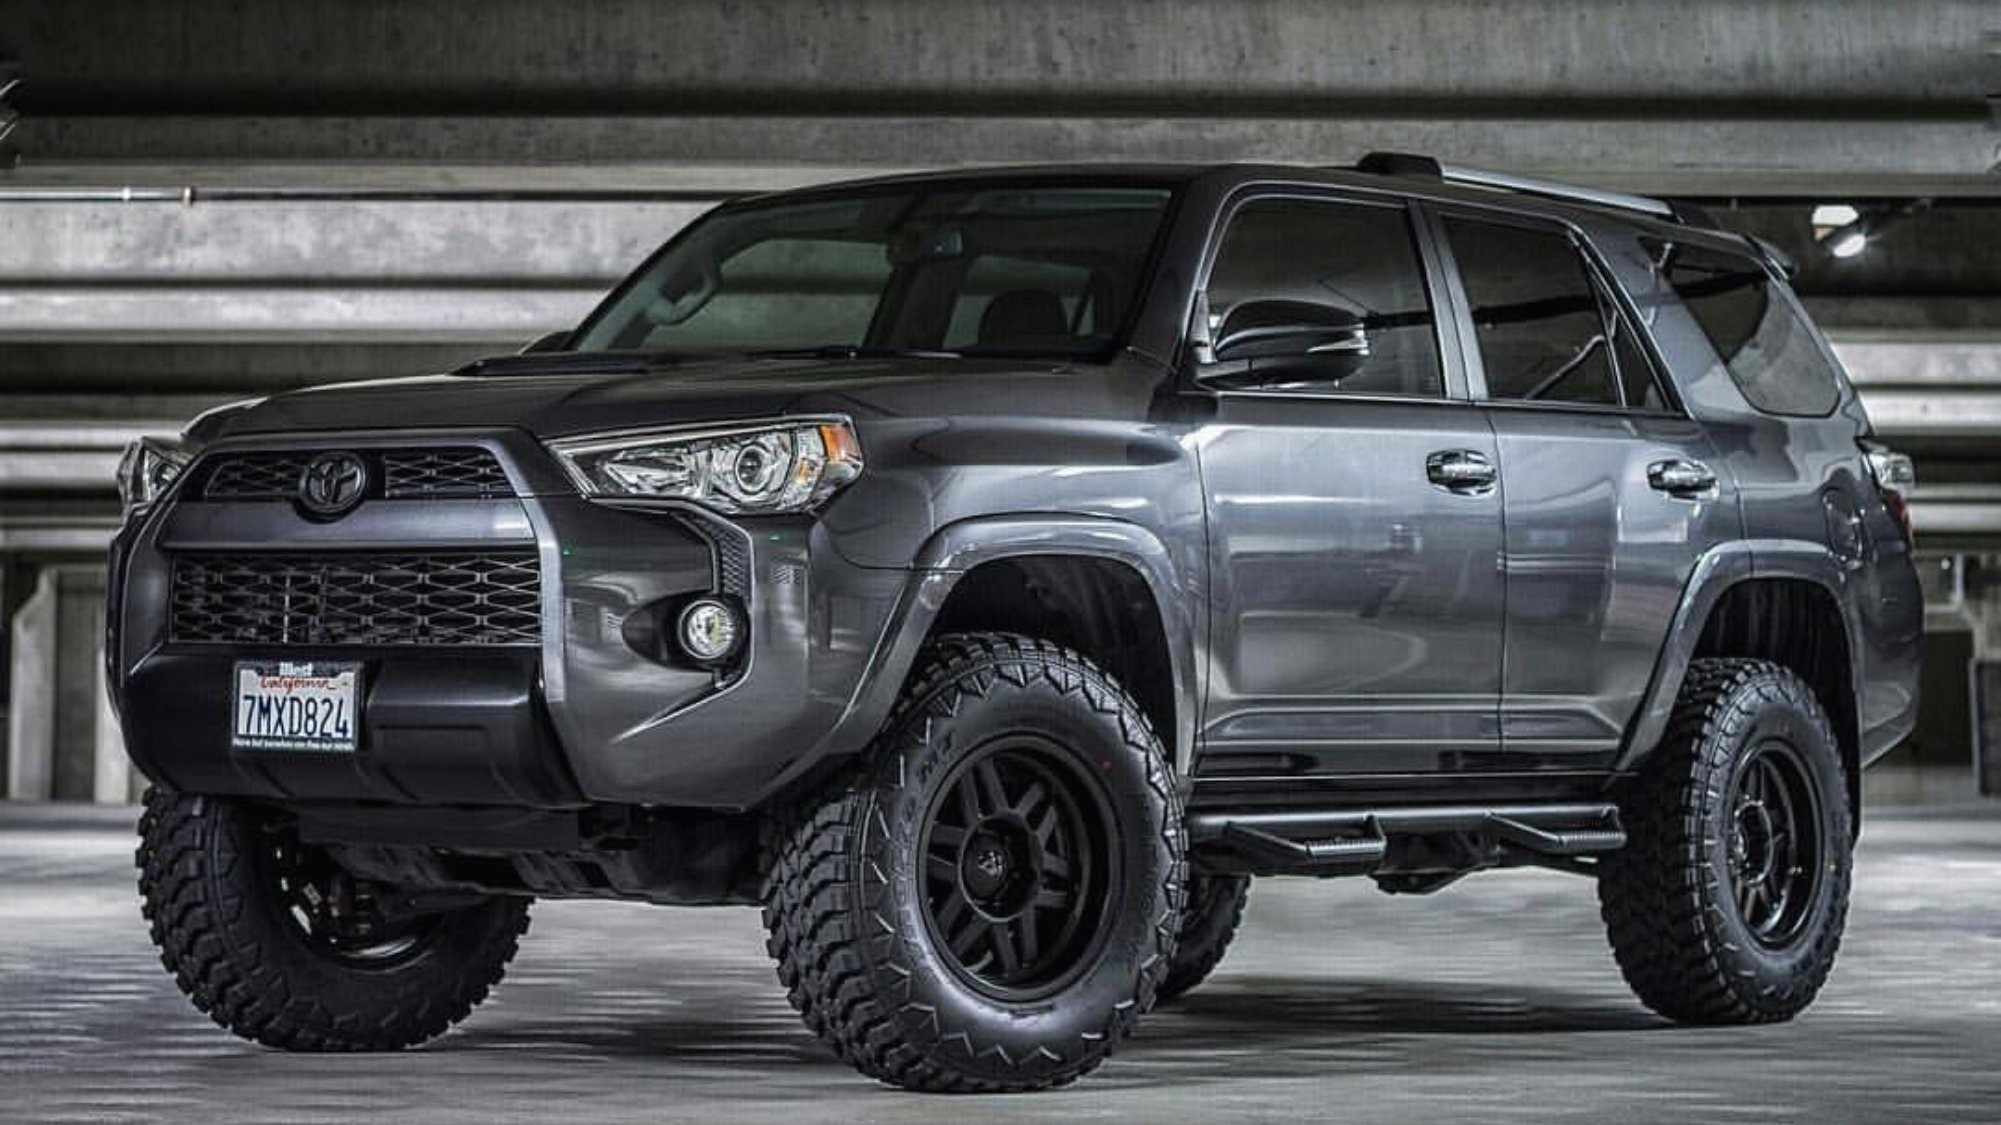 New 2020 Toyota Sequoias Price And Review Cars Review 2019 Toyota 4runner Trd Toyota Suv Toyota Forerunner